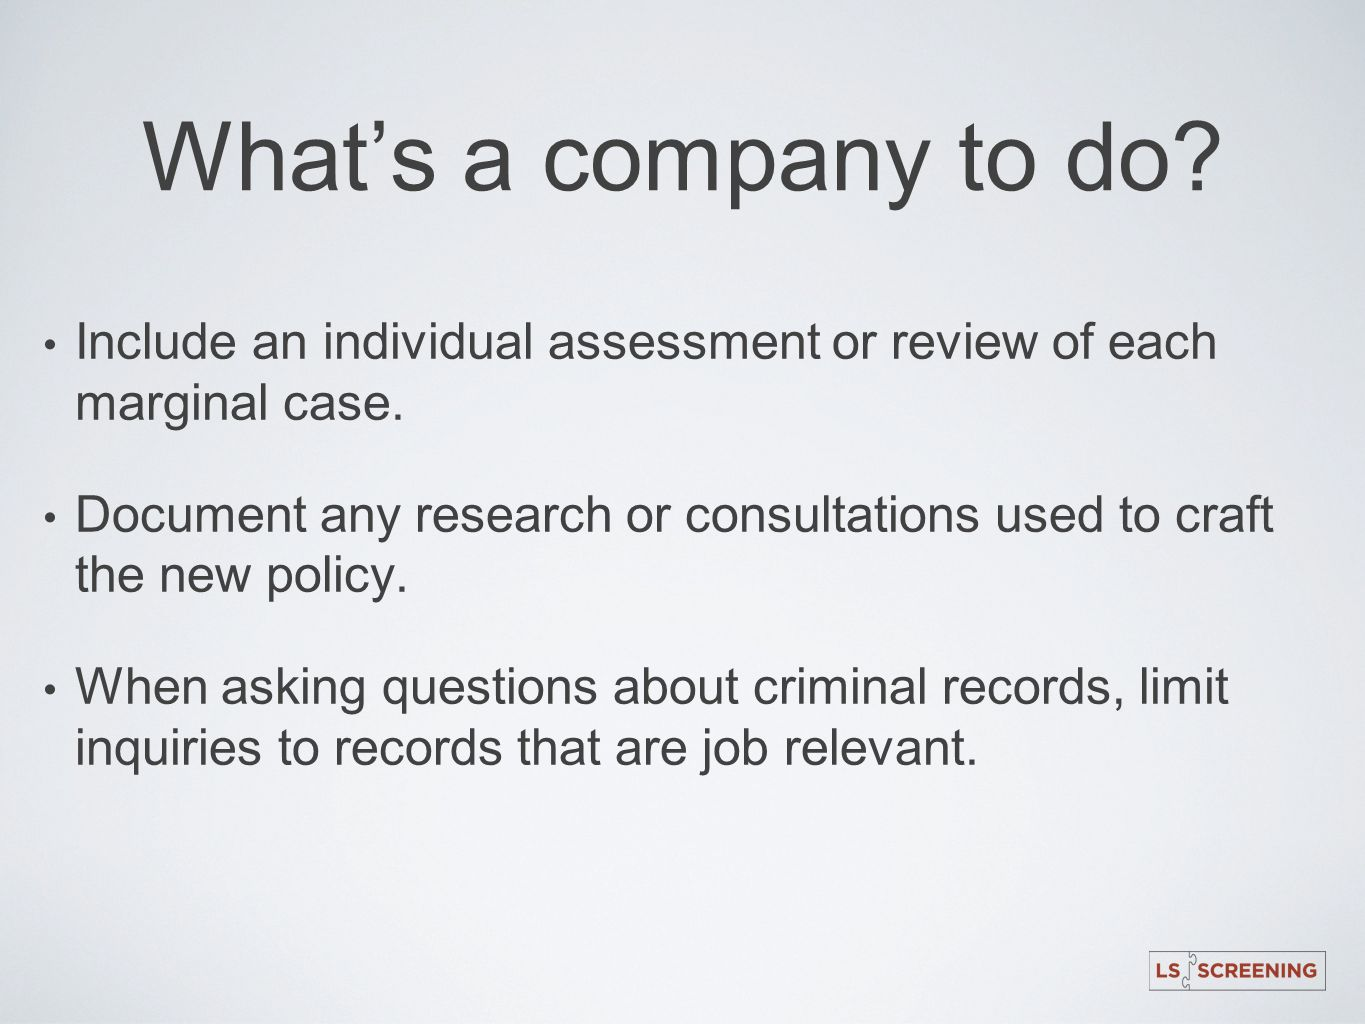 What's a company to do Include an individual assessment or review of each marginal case.